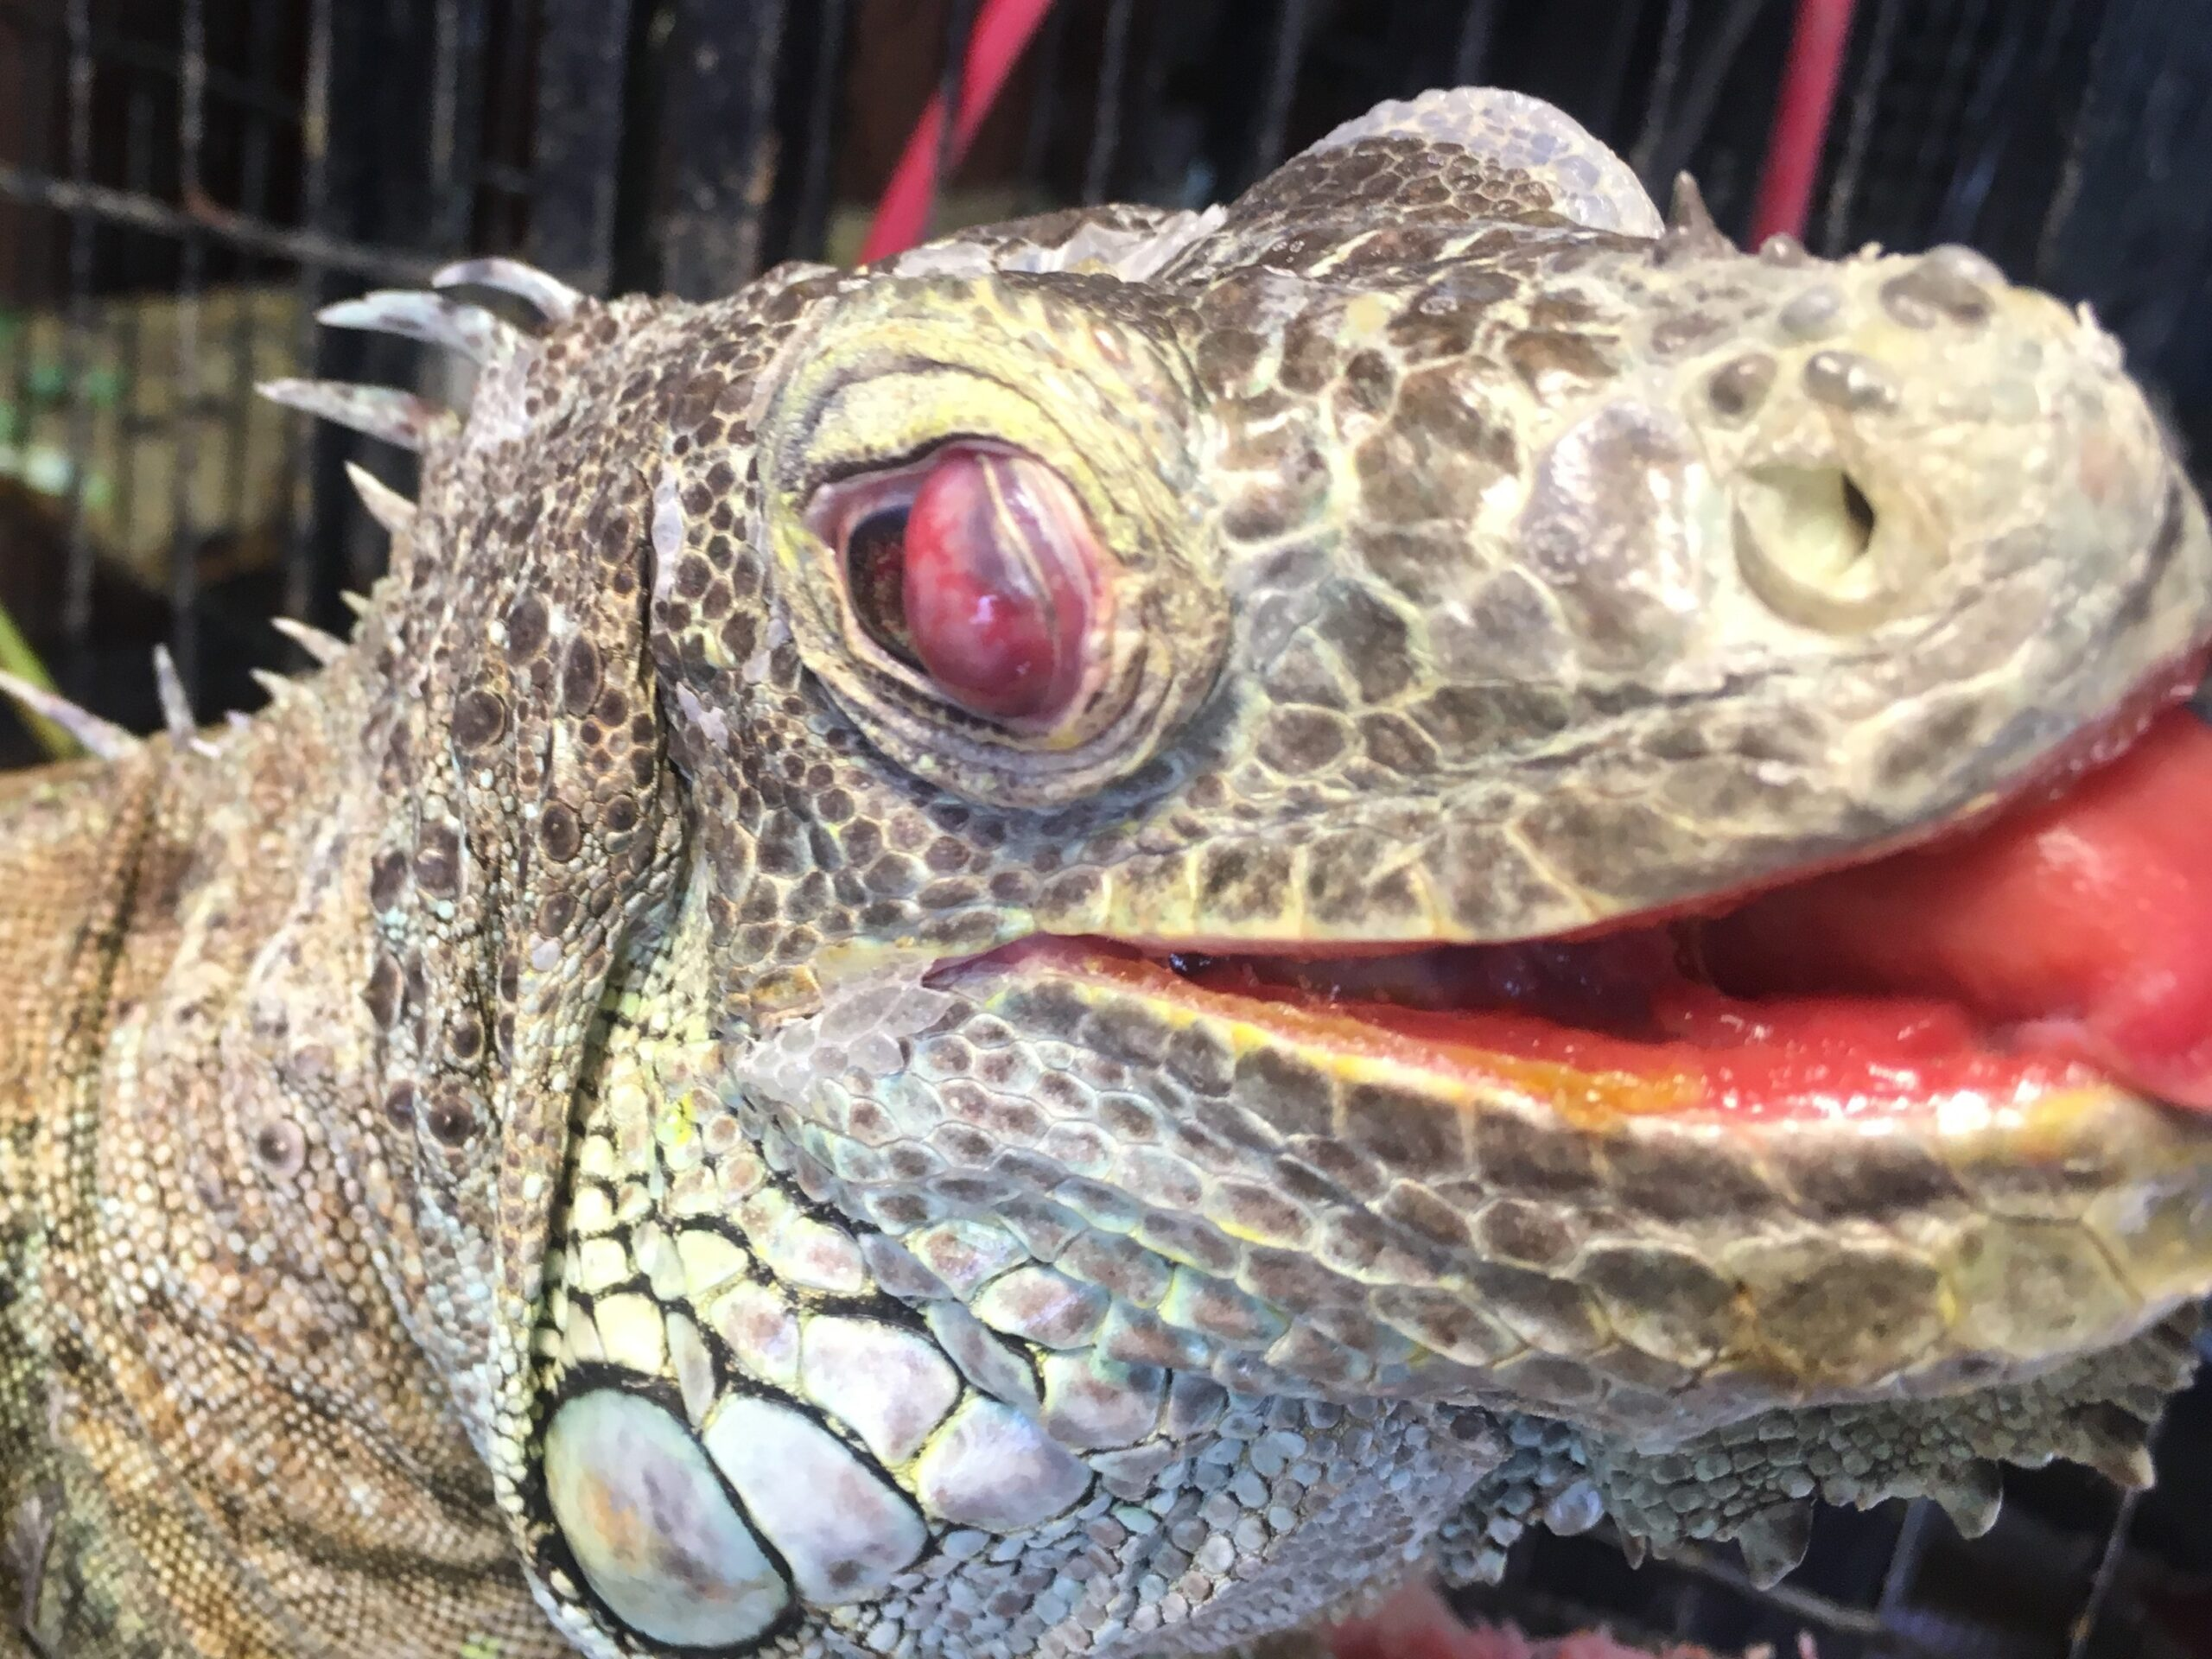 The swollen eye of a green iguana with high blood pressure